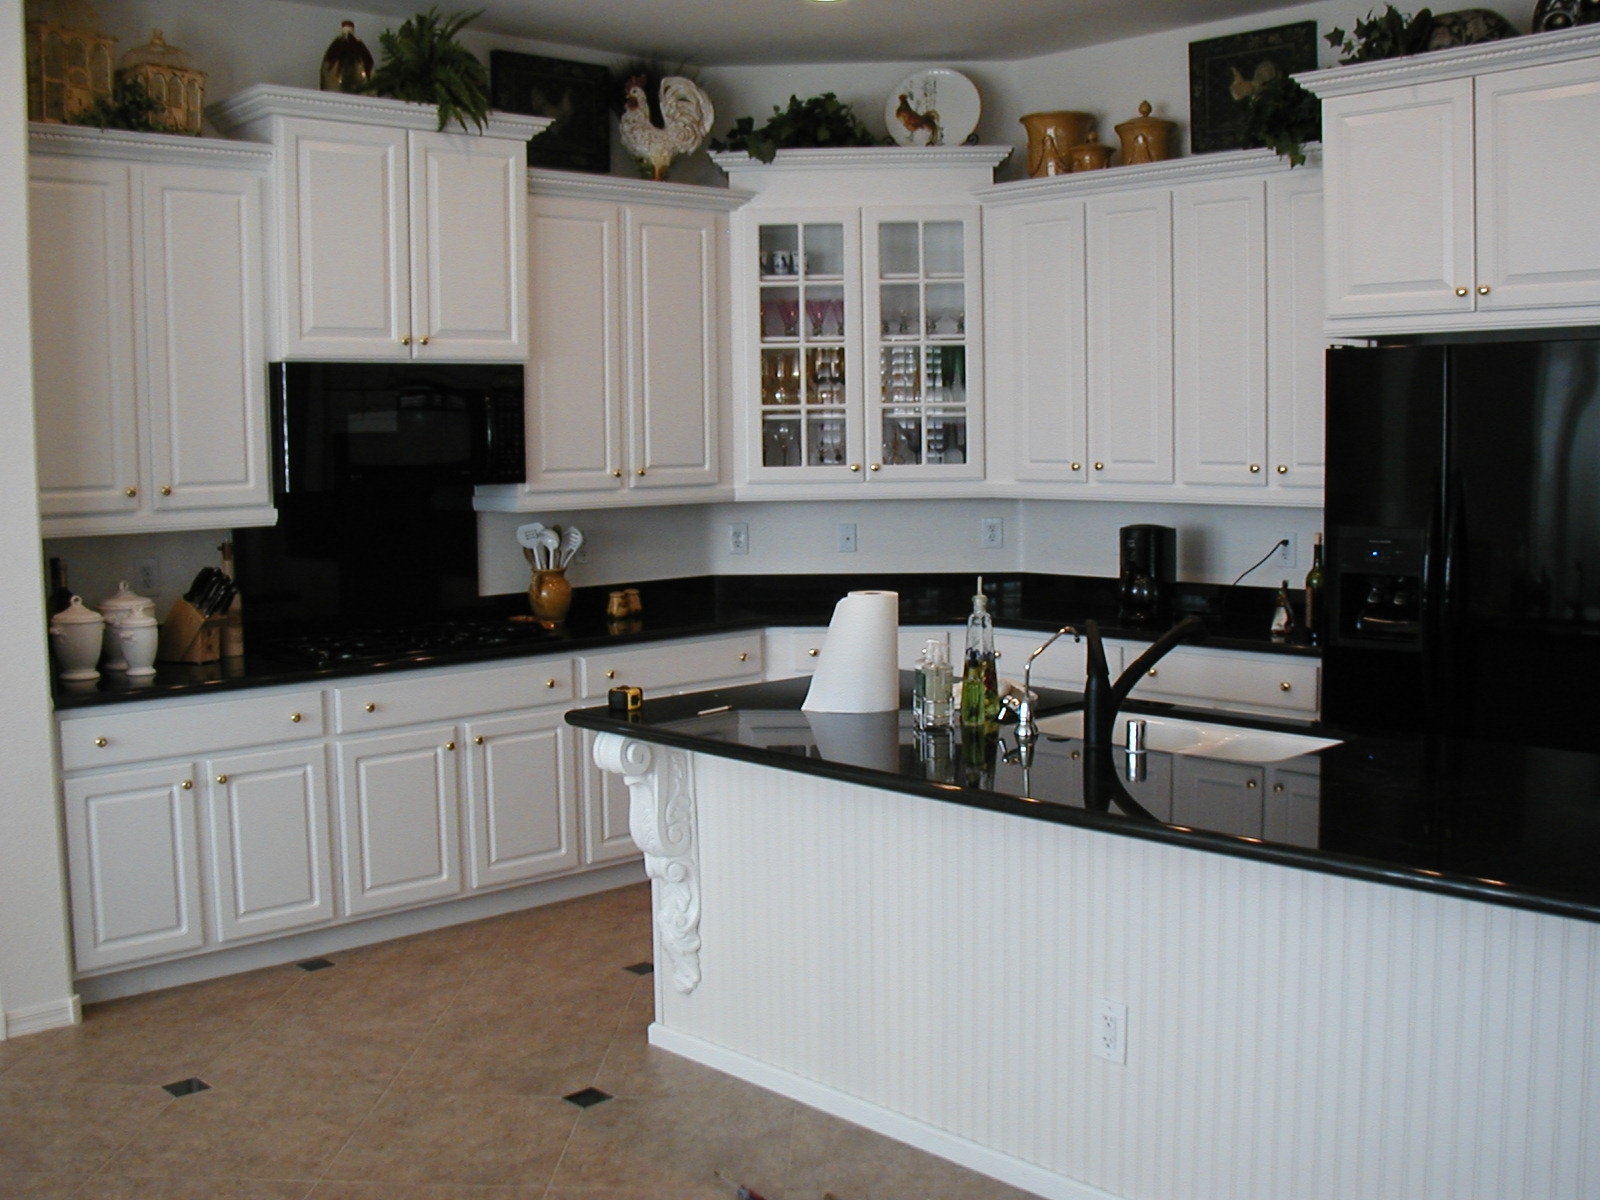 The amazing How to glaze kitchen cabinets for painting image